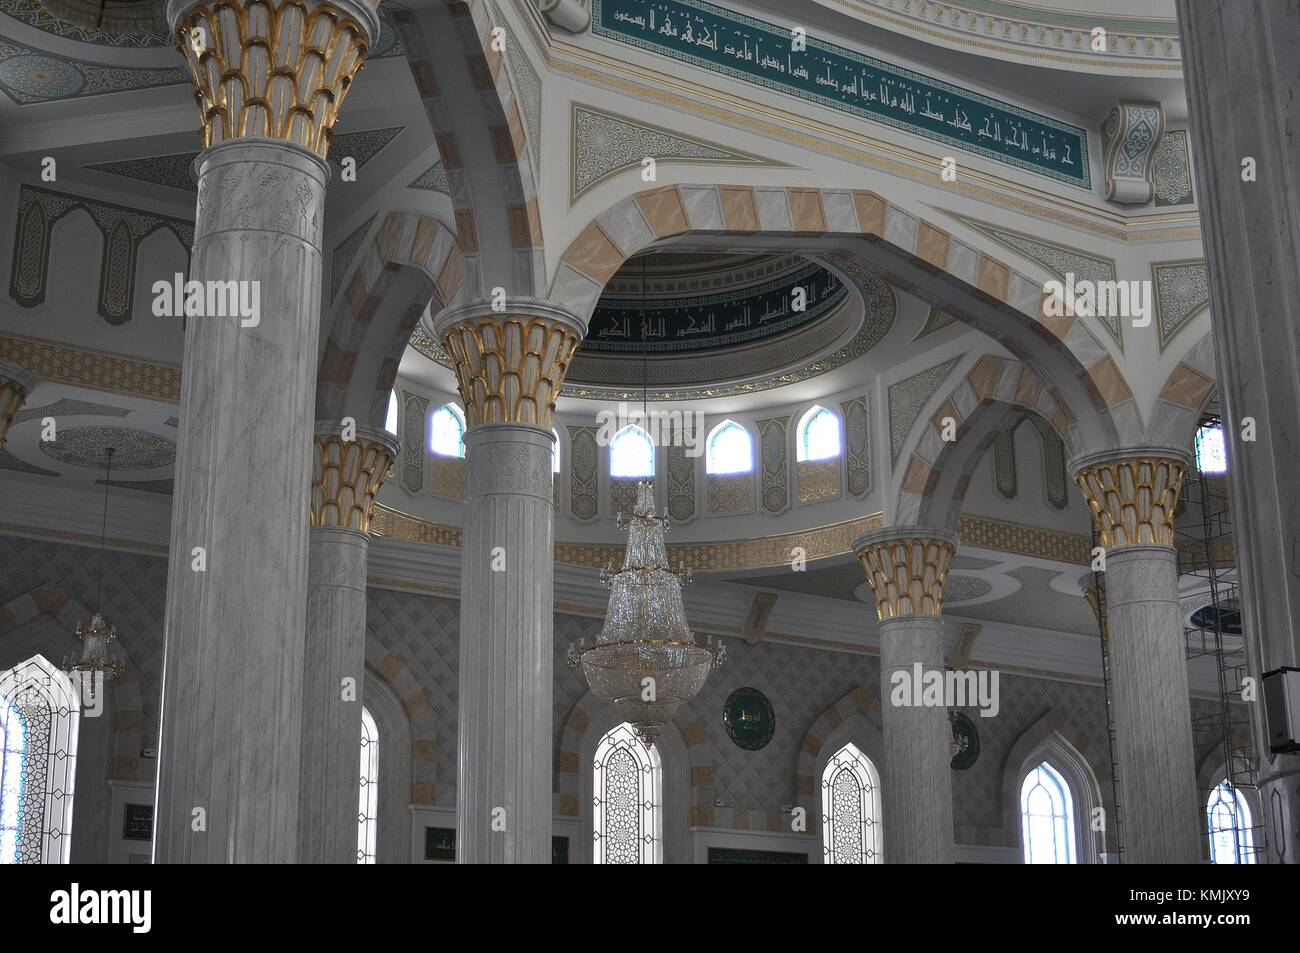 INTERIOR OF HAZRAT SULTAN MOSQUE, ASTANA, KAZAKHSTAN. Stock Photo